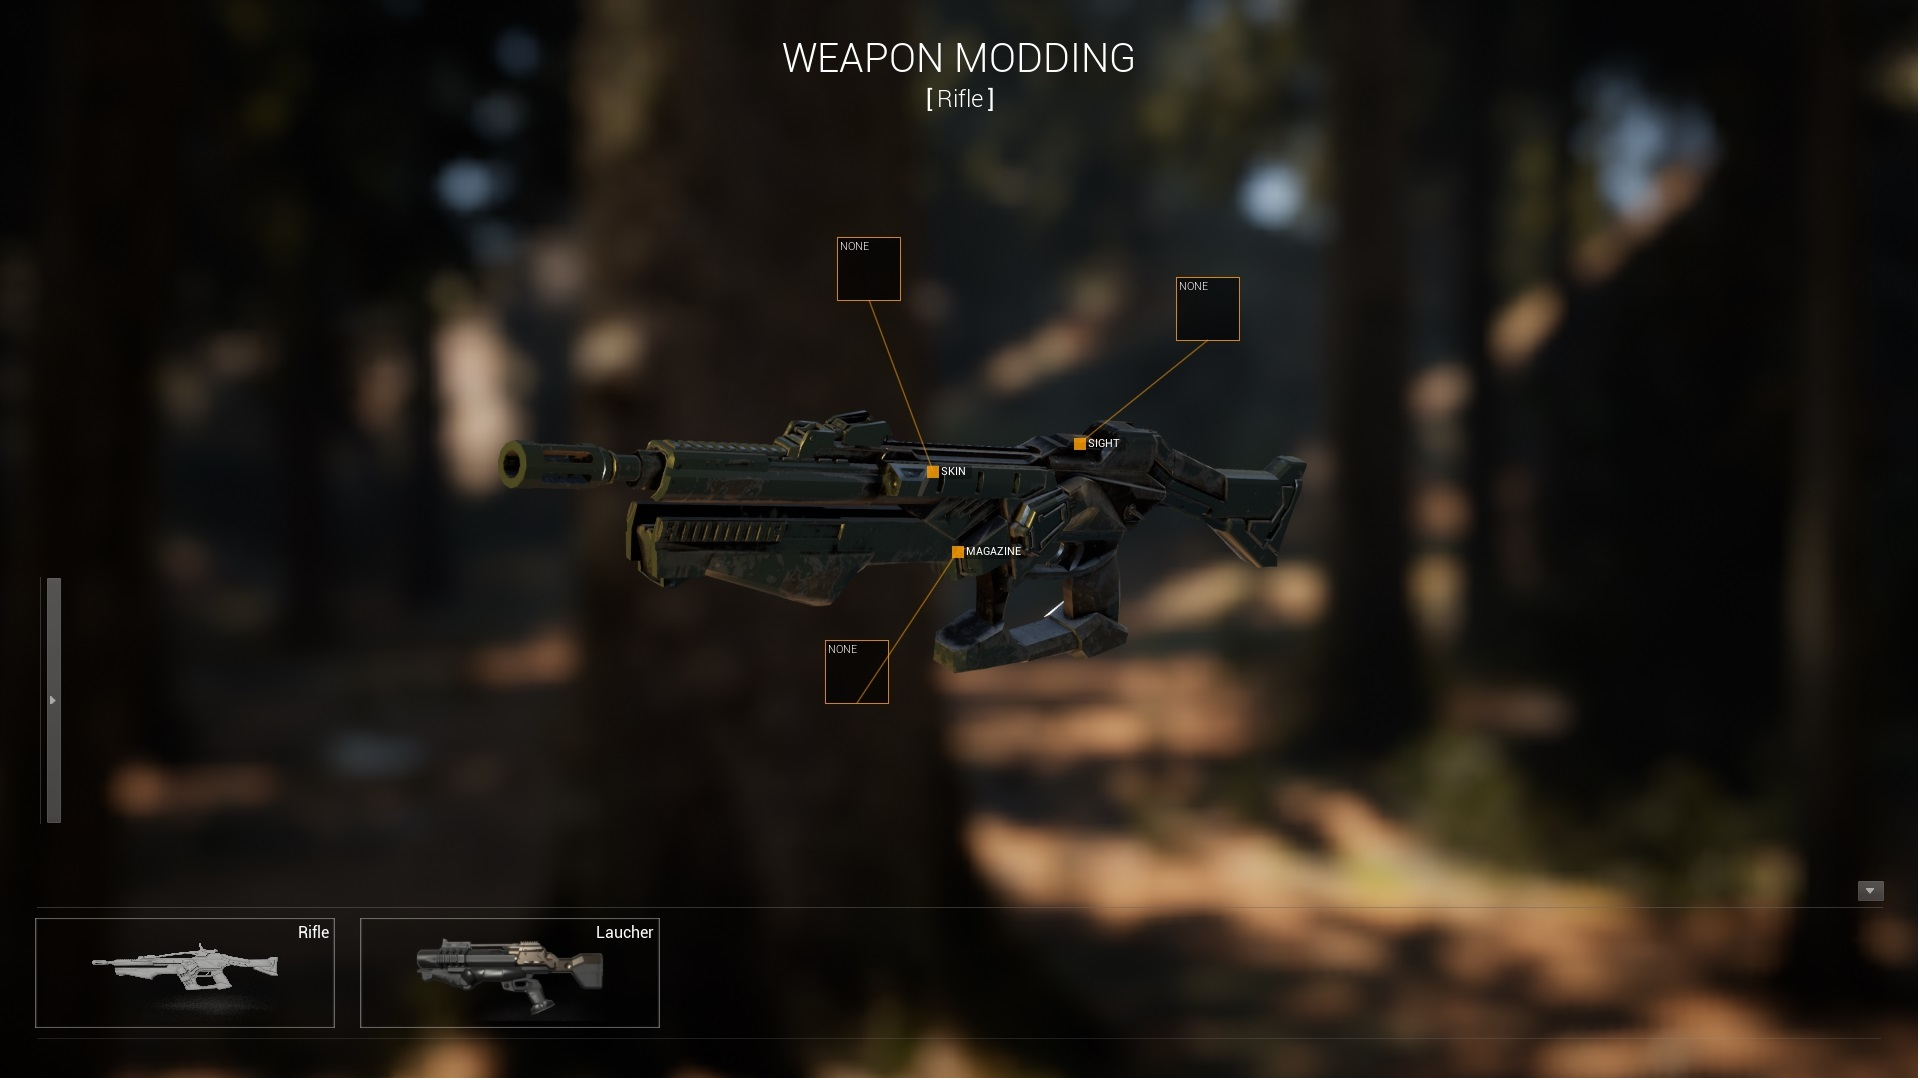 Weapon Customization System by Sertac Ogan in Blueprints